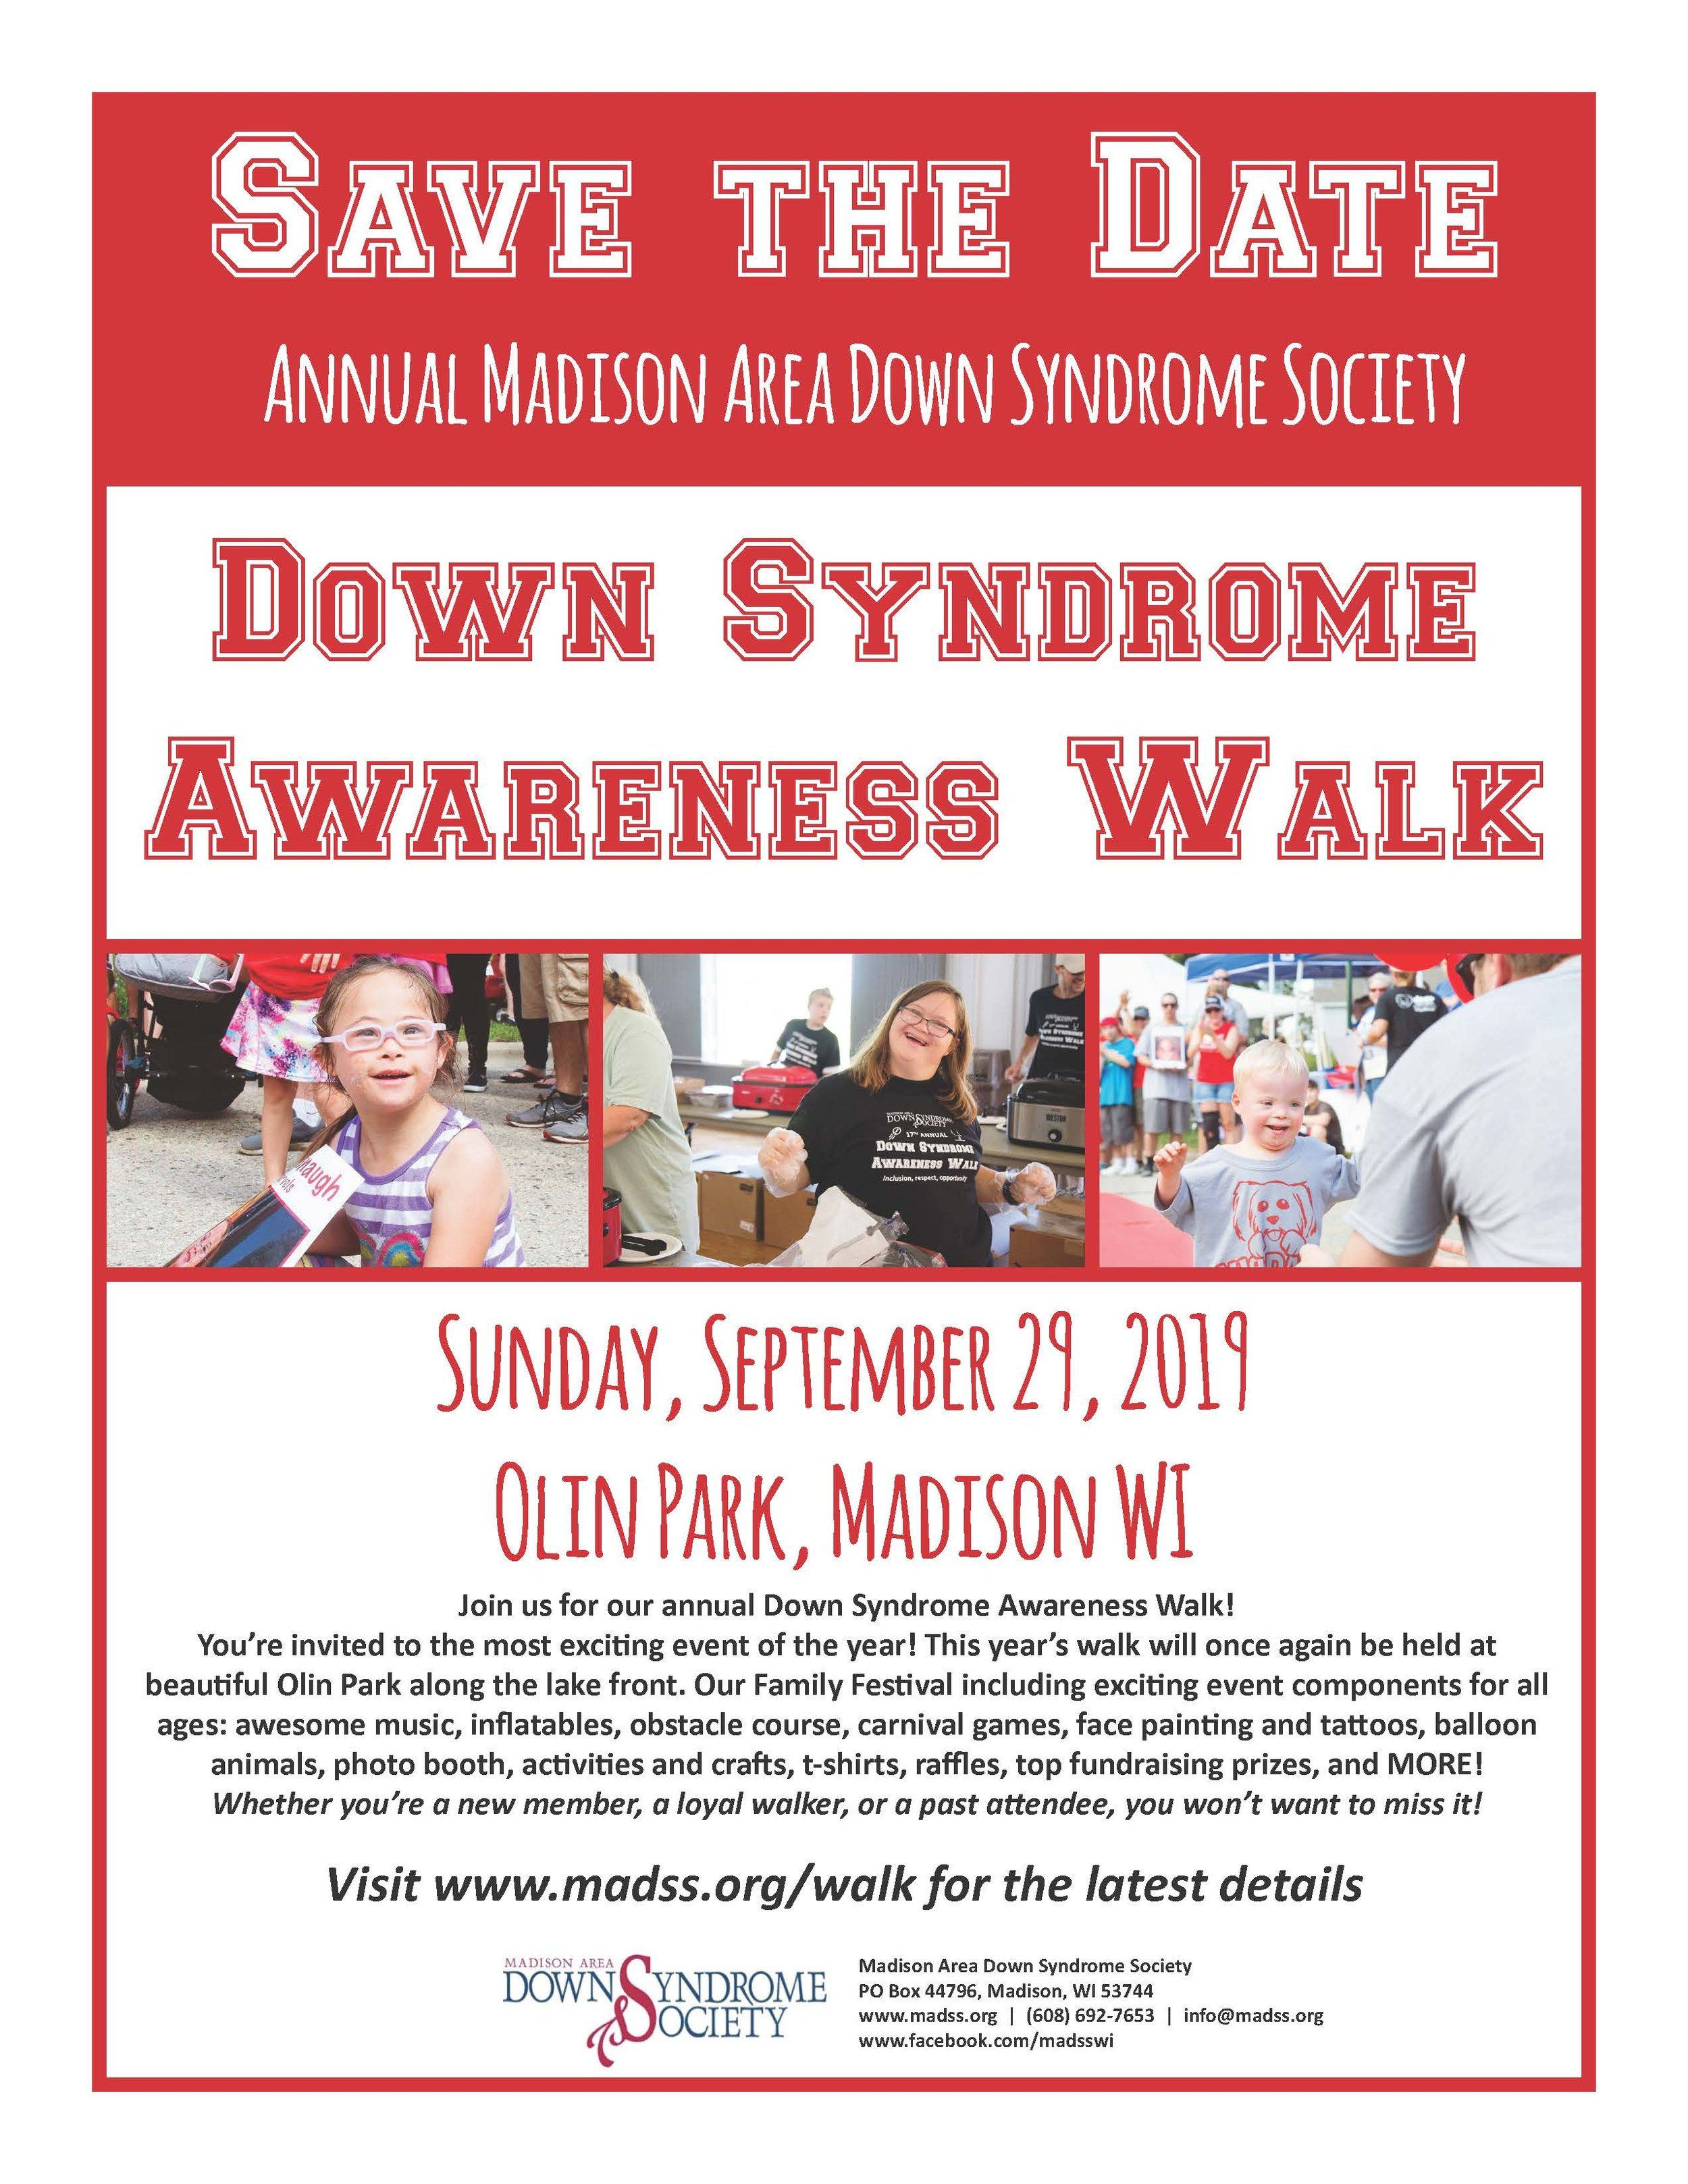 MADSS Walk Save the Date 2019.jpg